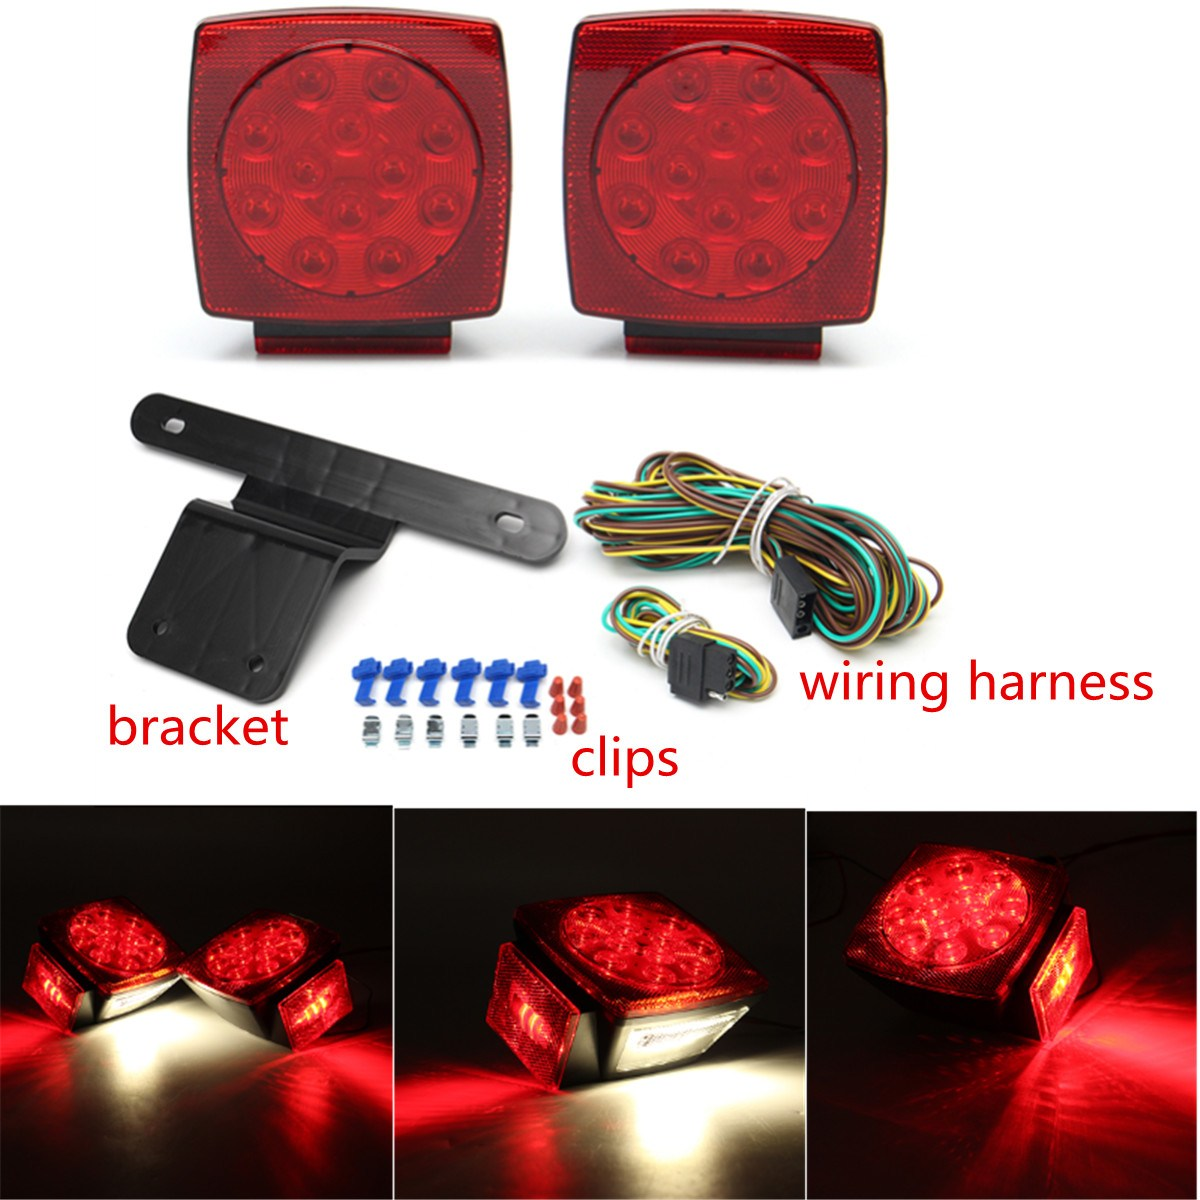 2pcs Led Tail Light Assembly Brake Stop Submersible License Lights Trailer Harness Kit Side For Boat Rv Camper Over 80 In Truck System From Automobiles